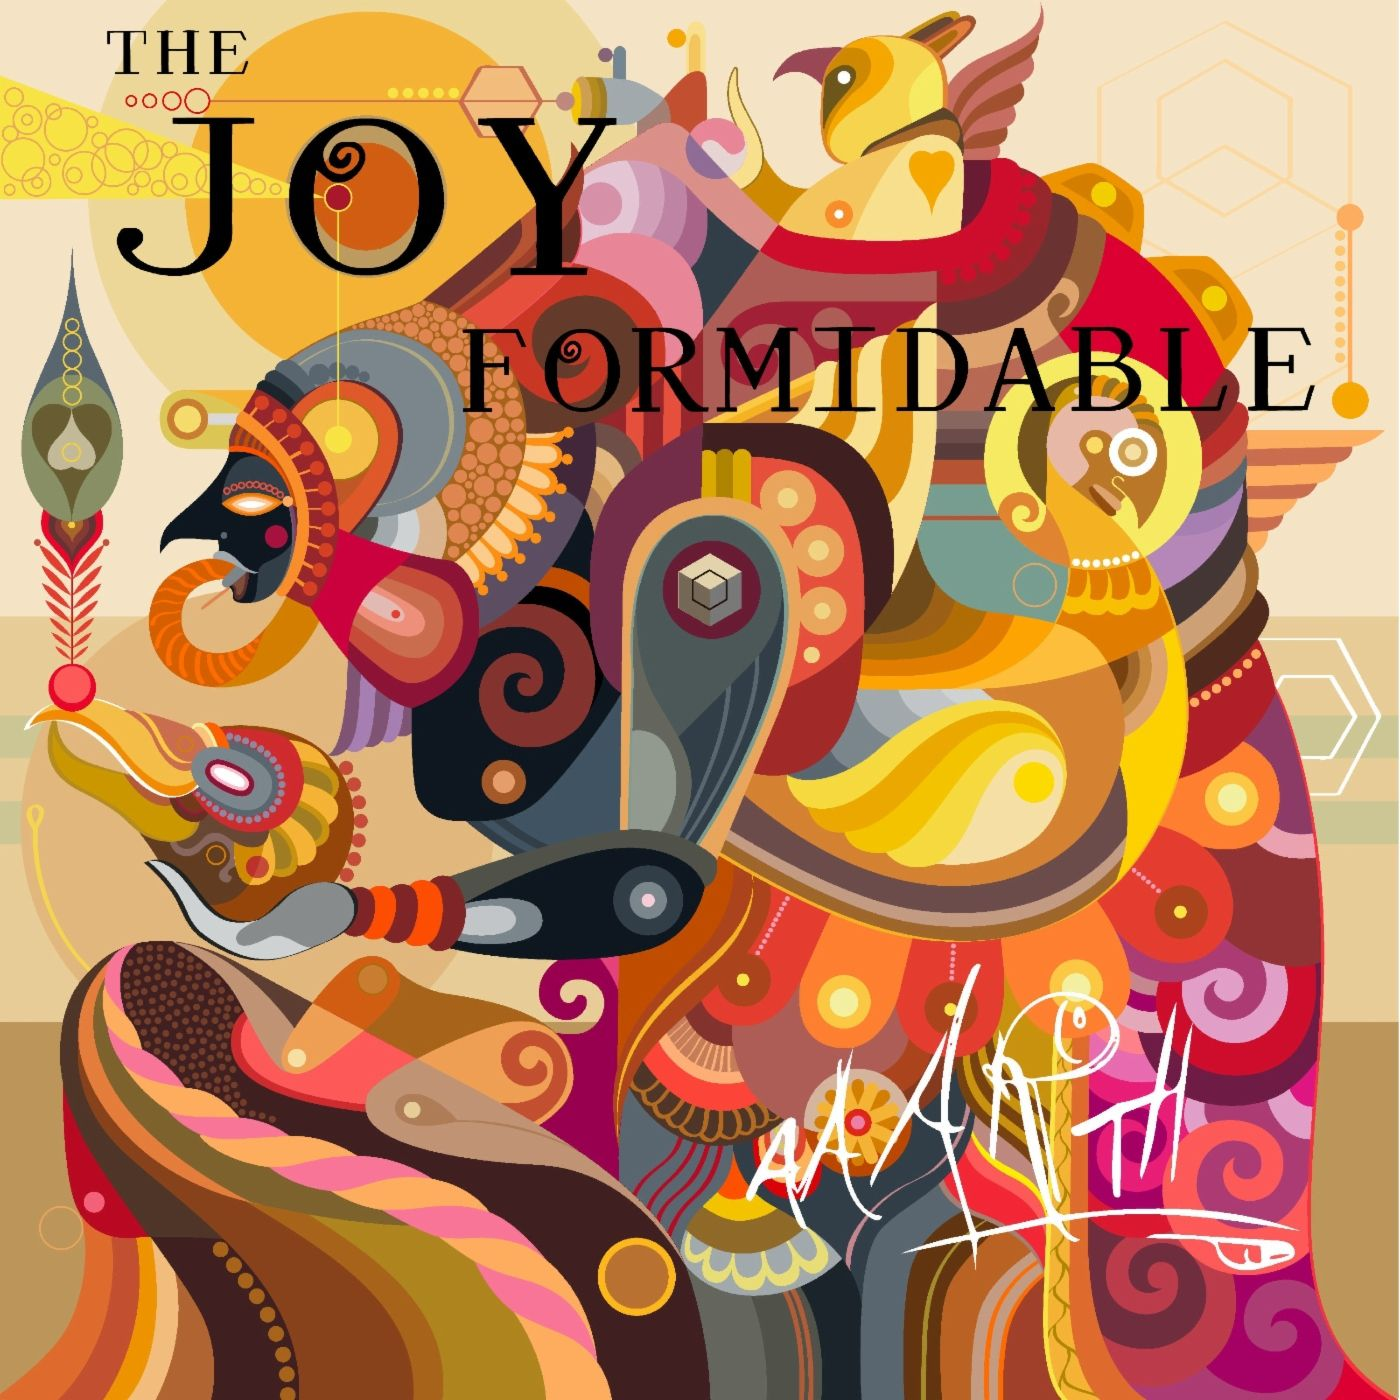 News – The Joy Formidable – AAARTH